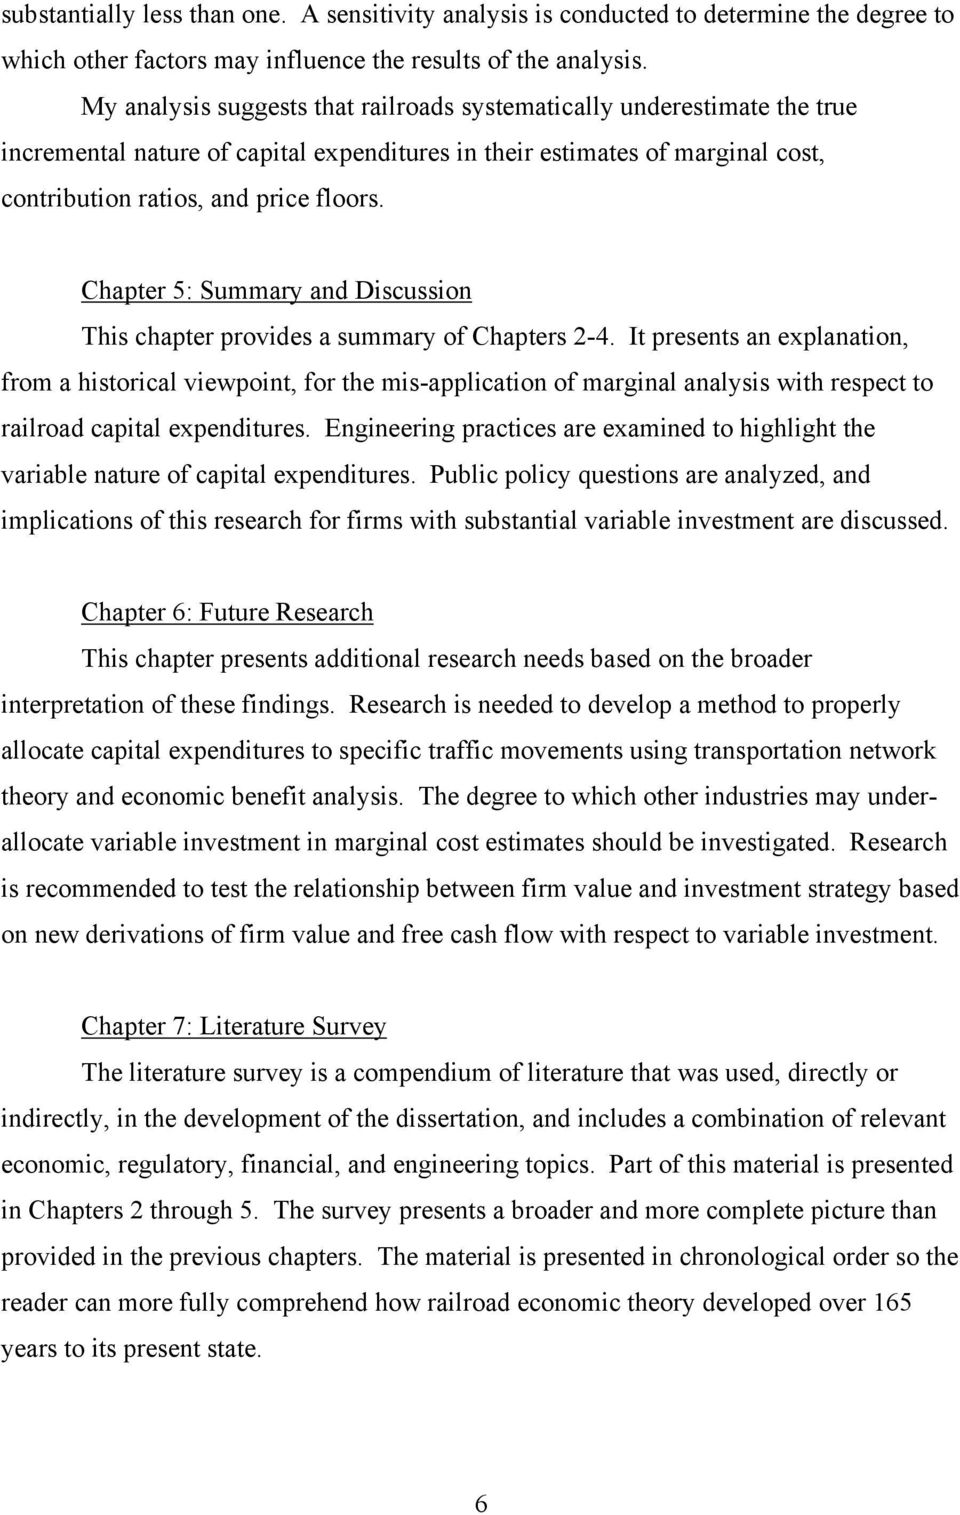 Chapter 5: Summary and Discussion This chapter provides a summary of Chapters 2-4.